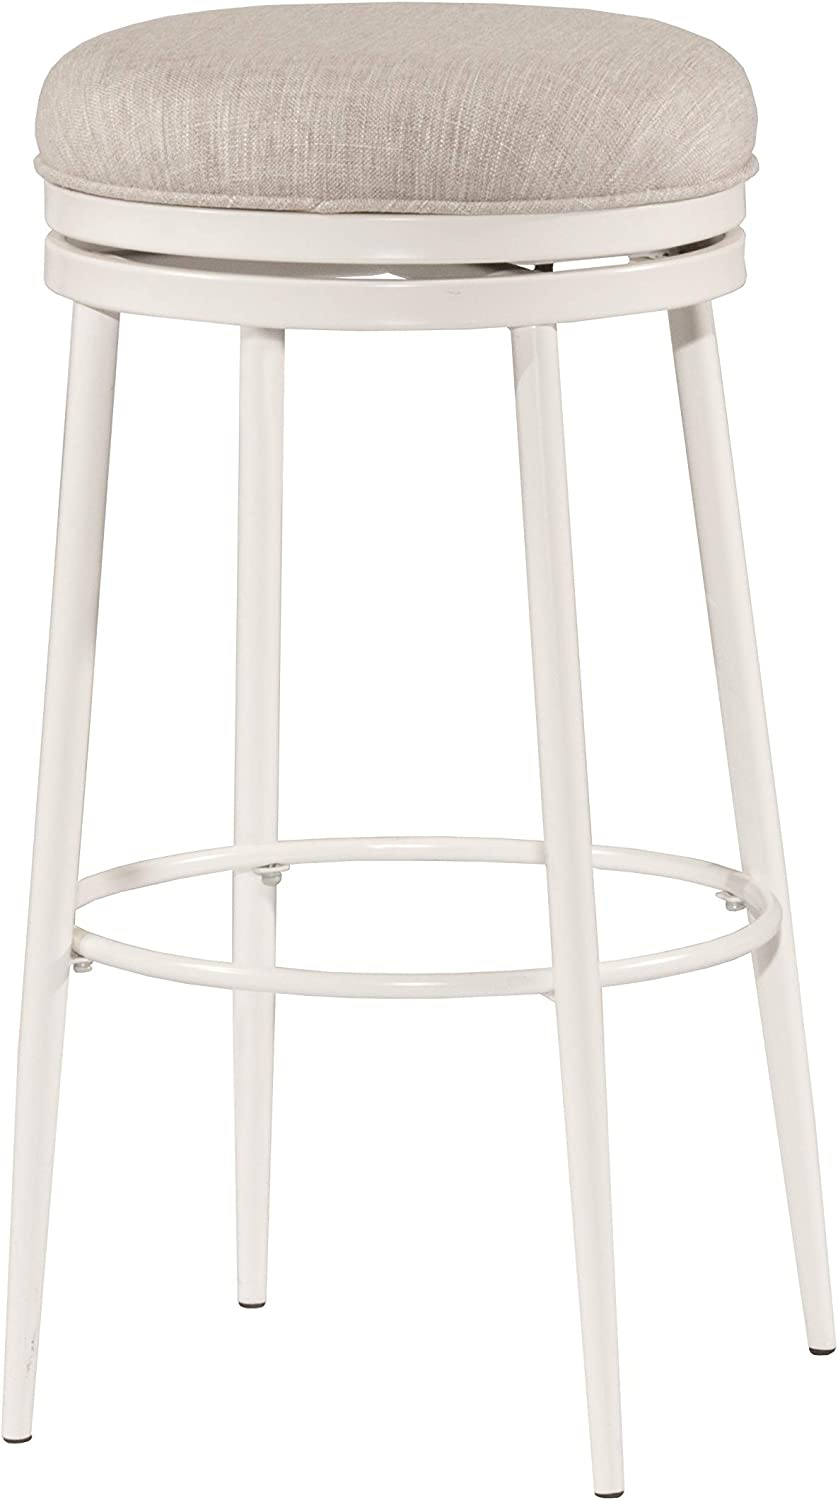 Hillsdale Furniture 4556-828 Aubrie Swivel Backless, White Counter Stool, Height